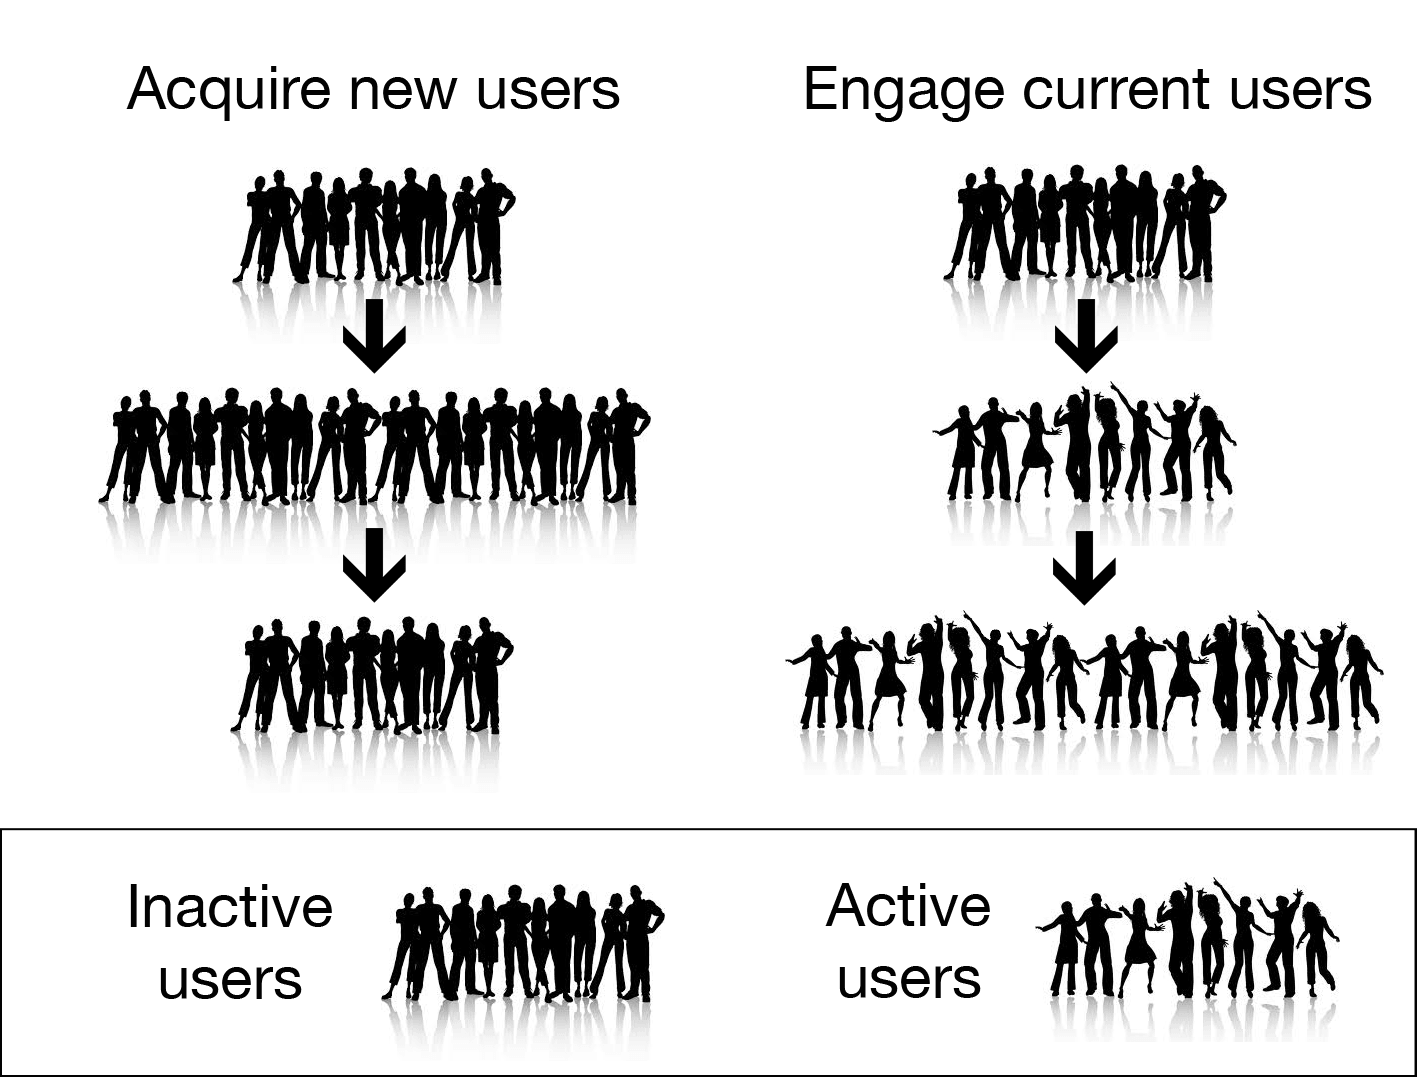 Acquire new app users VS engage current app users